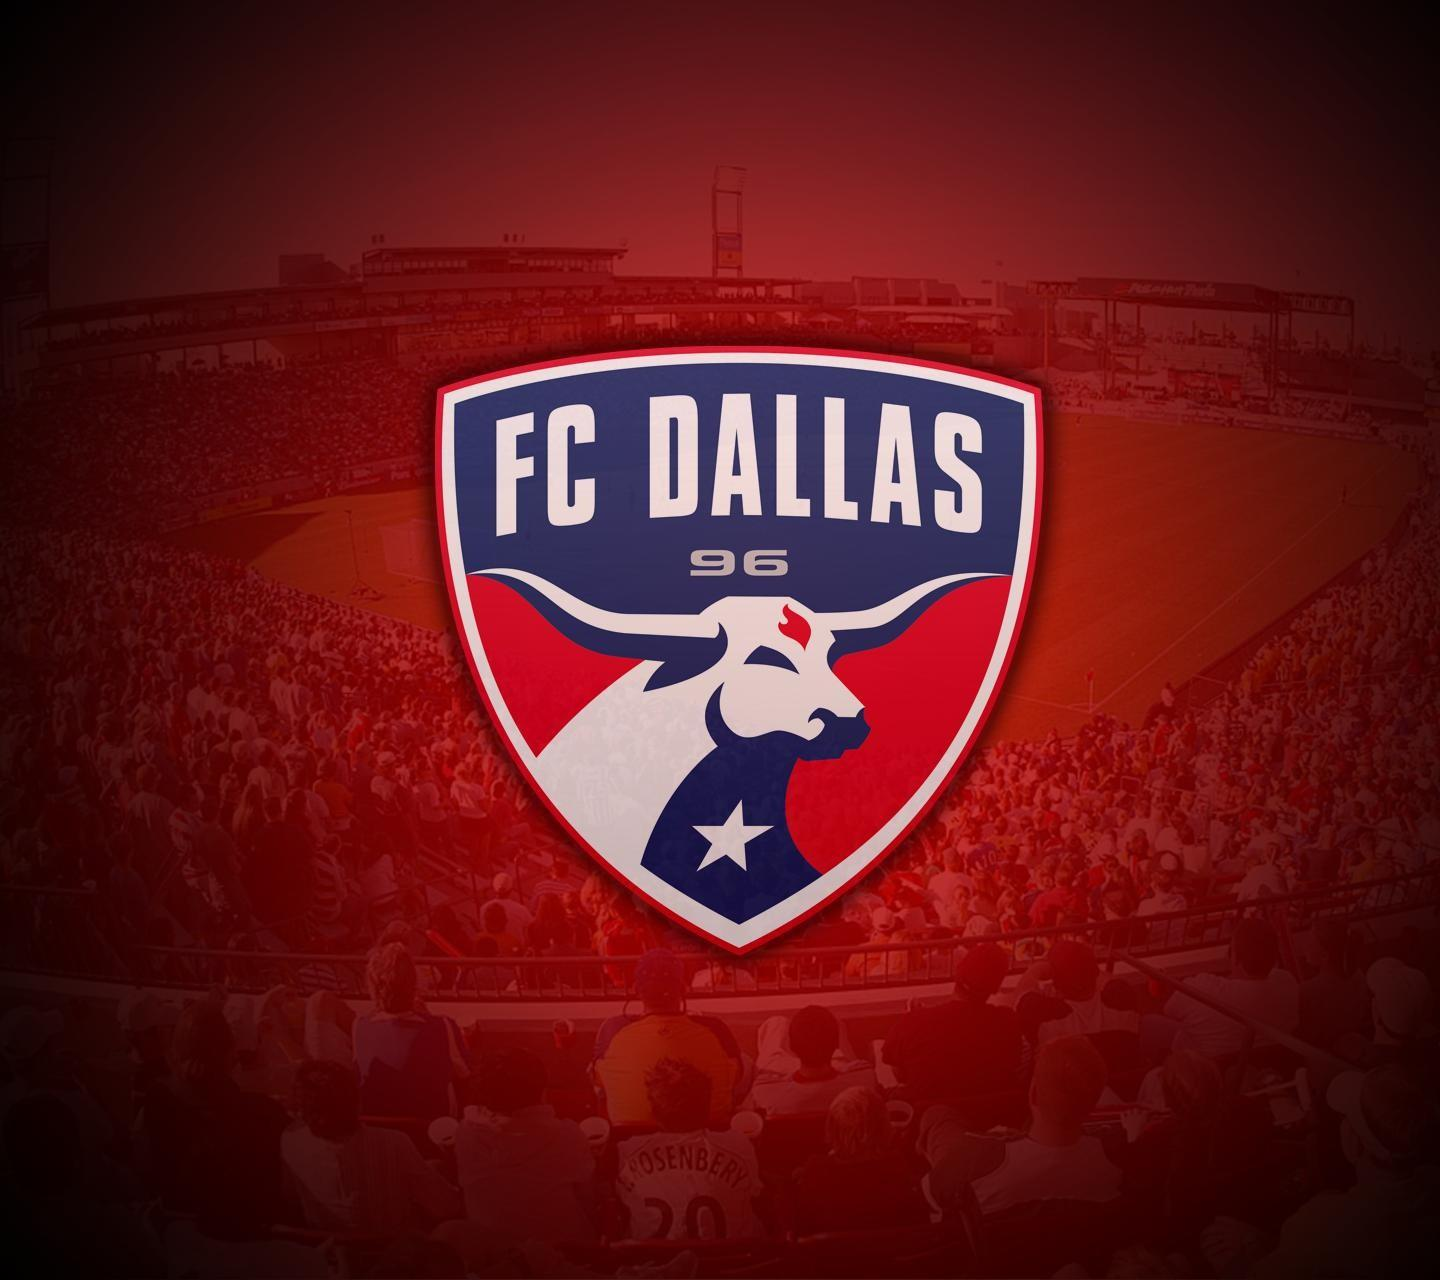 Fc Dallas Wallpapers HD Backgrounds, Image, Pics, Photos Free